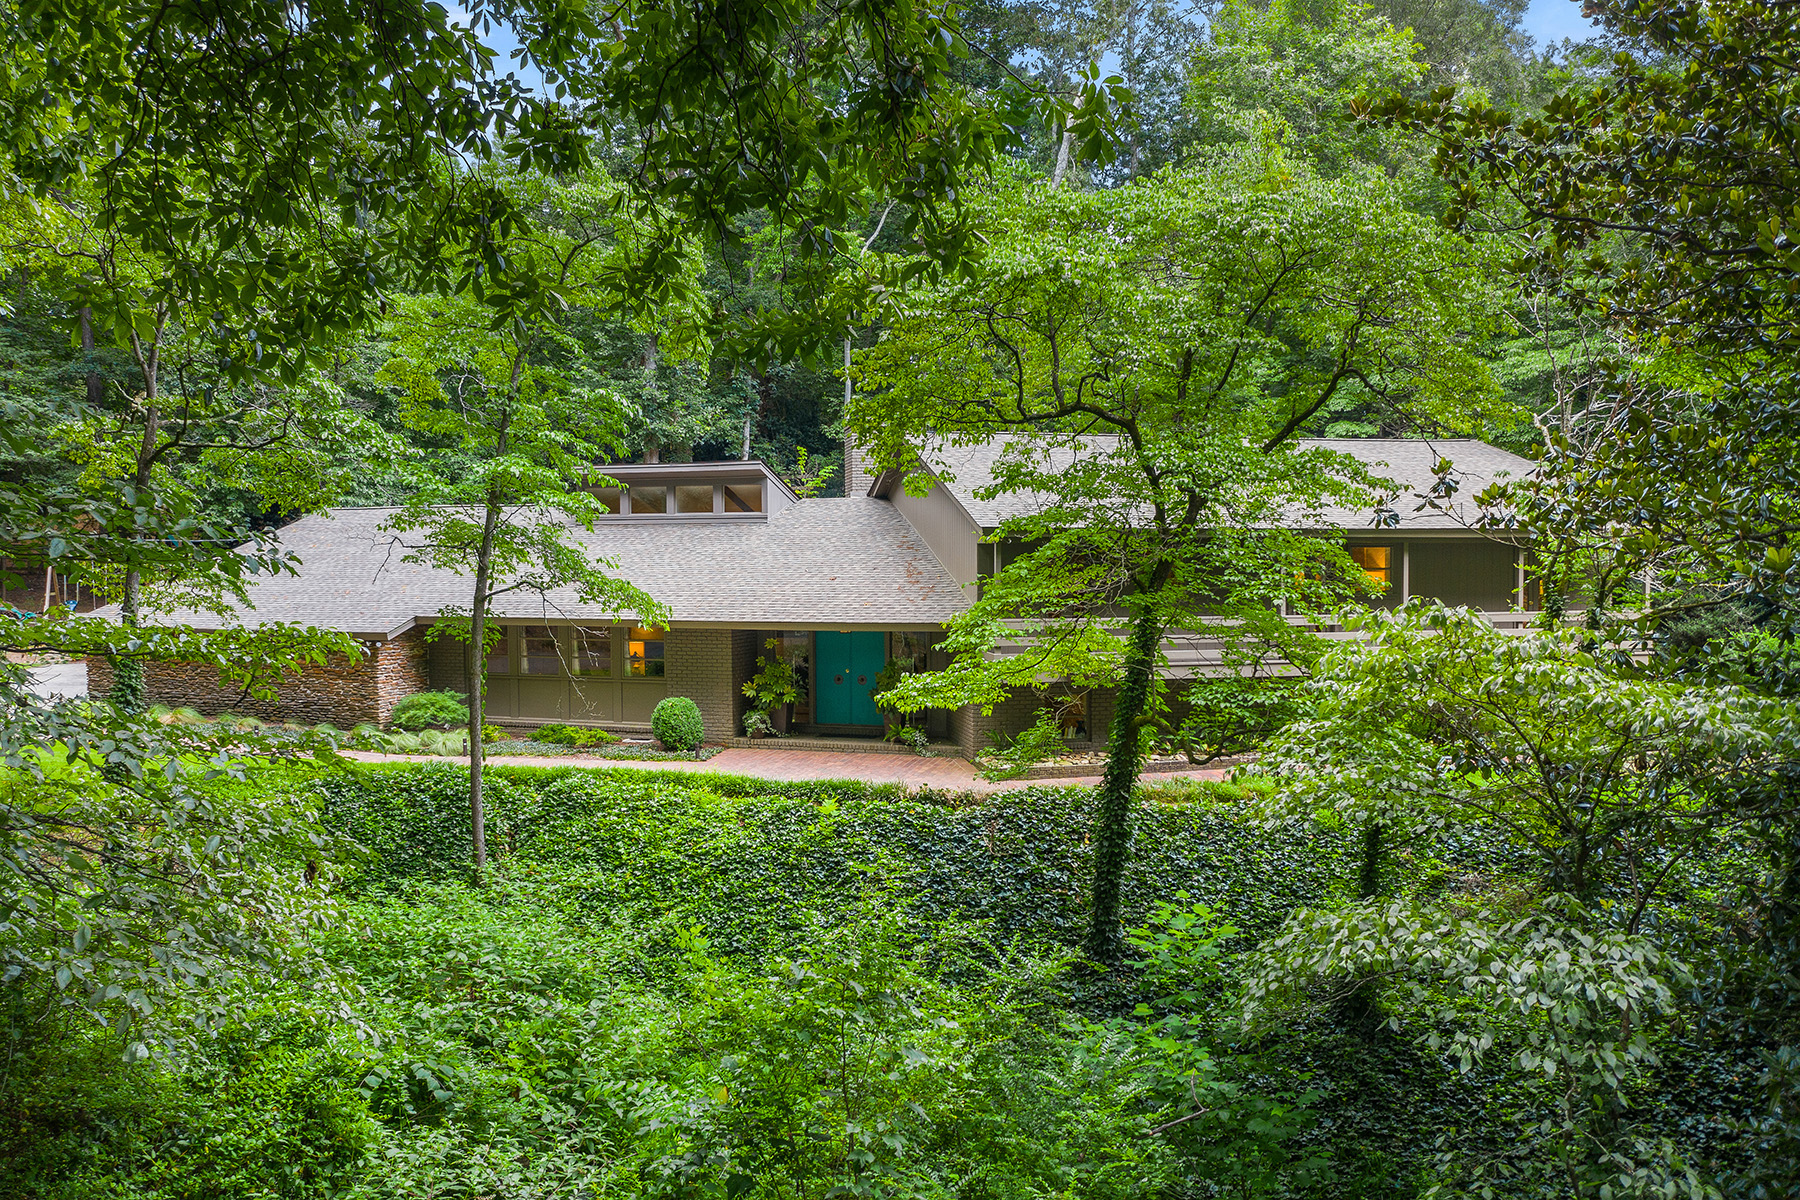 Property for Sale at Renovated Mid-Century Gem on 1.2+/- Acres 4115 Conway Valley Road Atlanta, Georgia 30327 United States